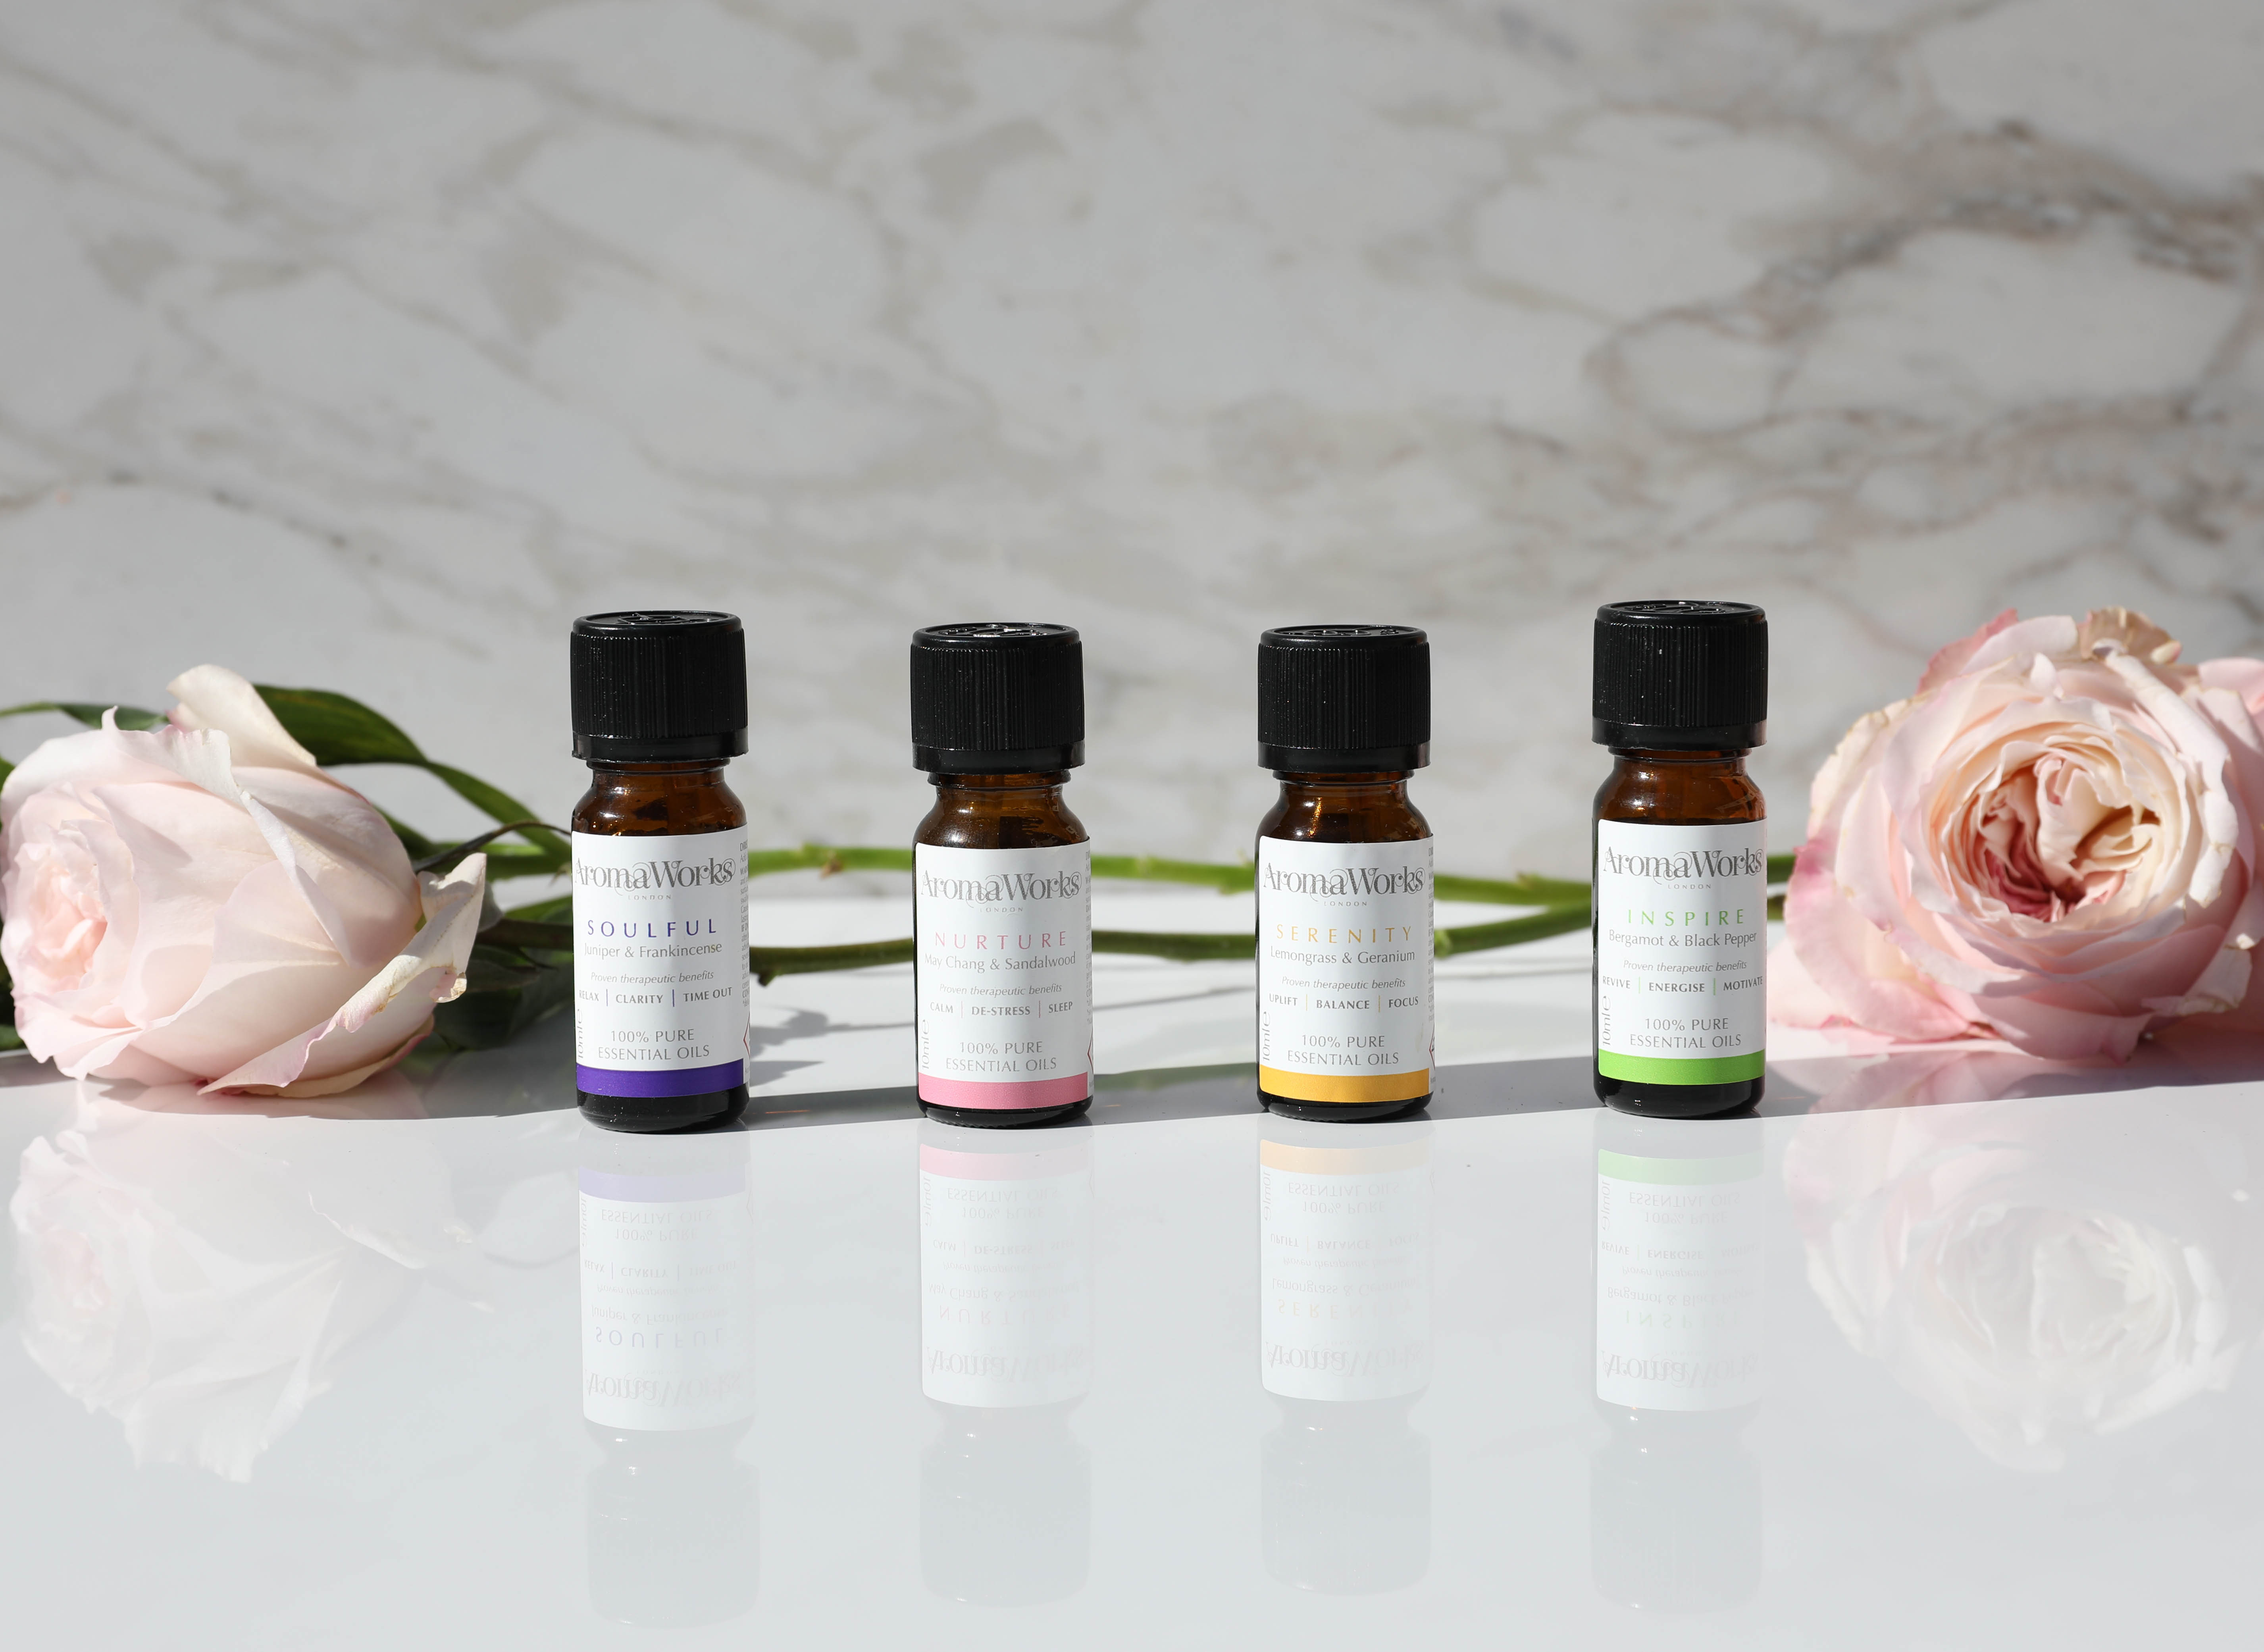 Do Essential Oils and Aromatherapy Really Work?